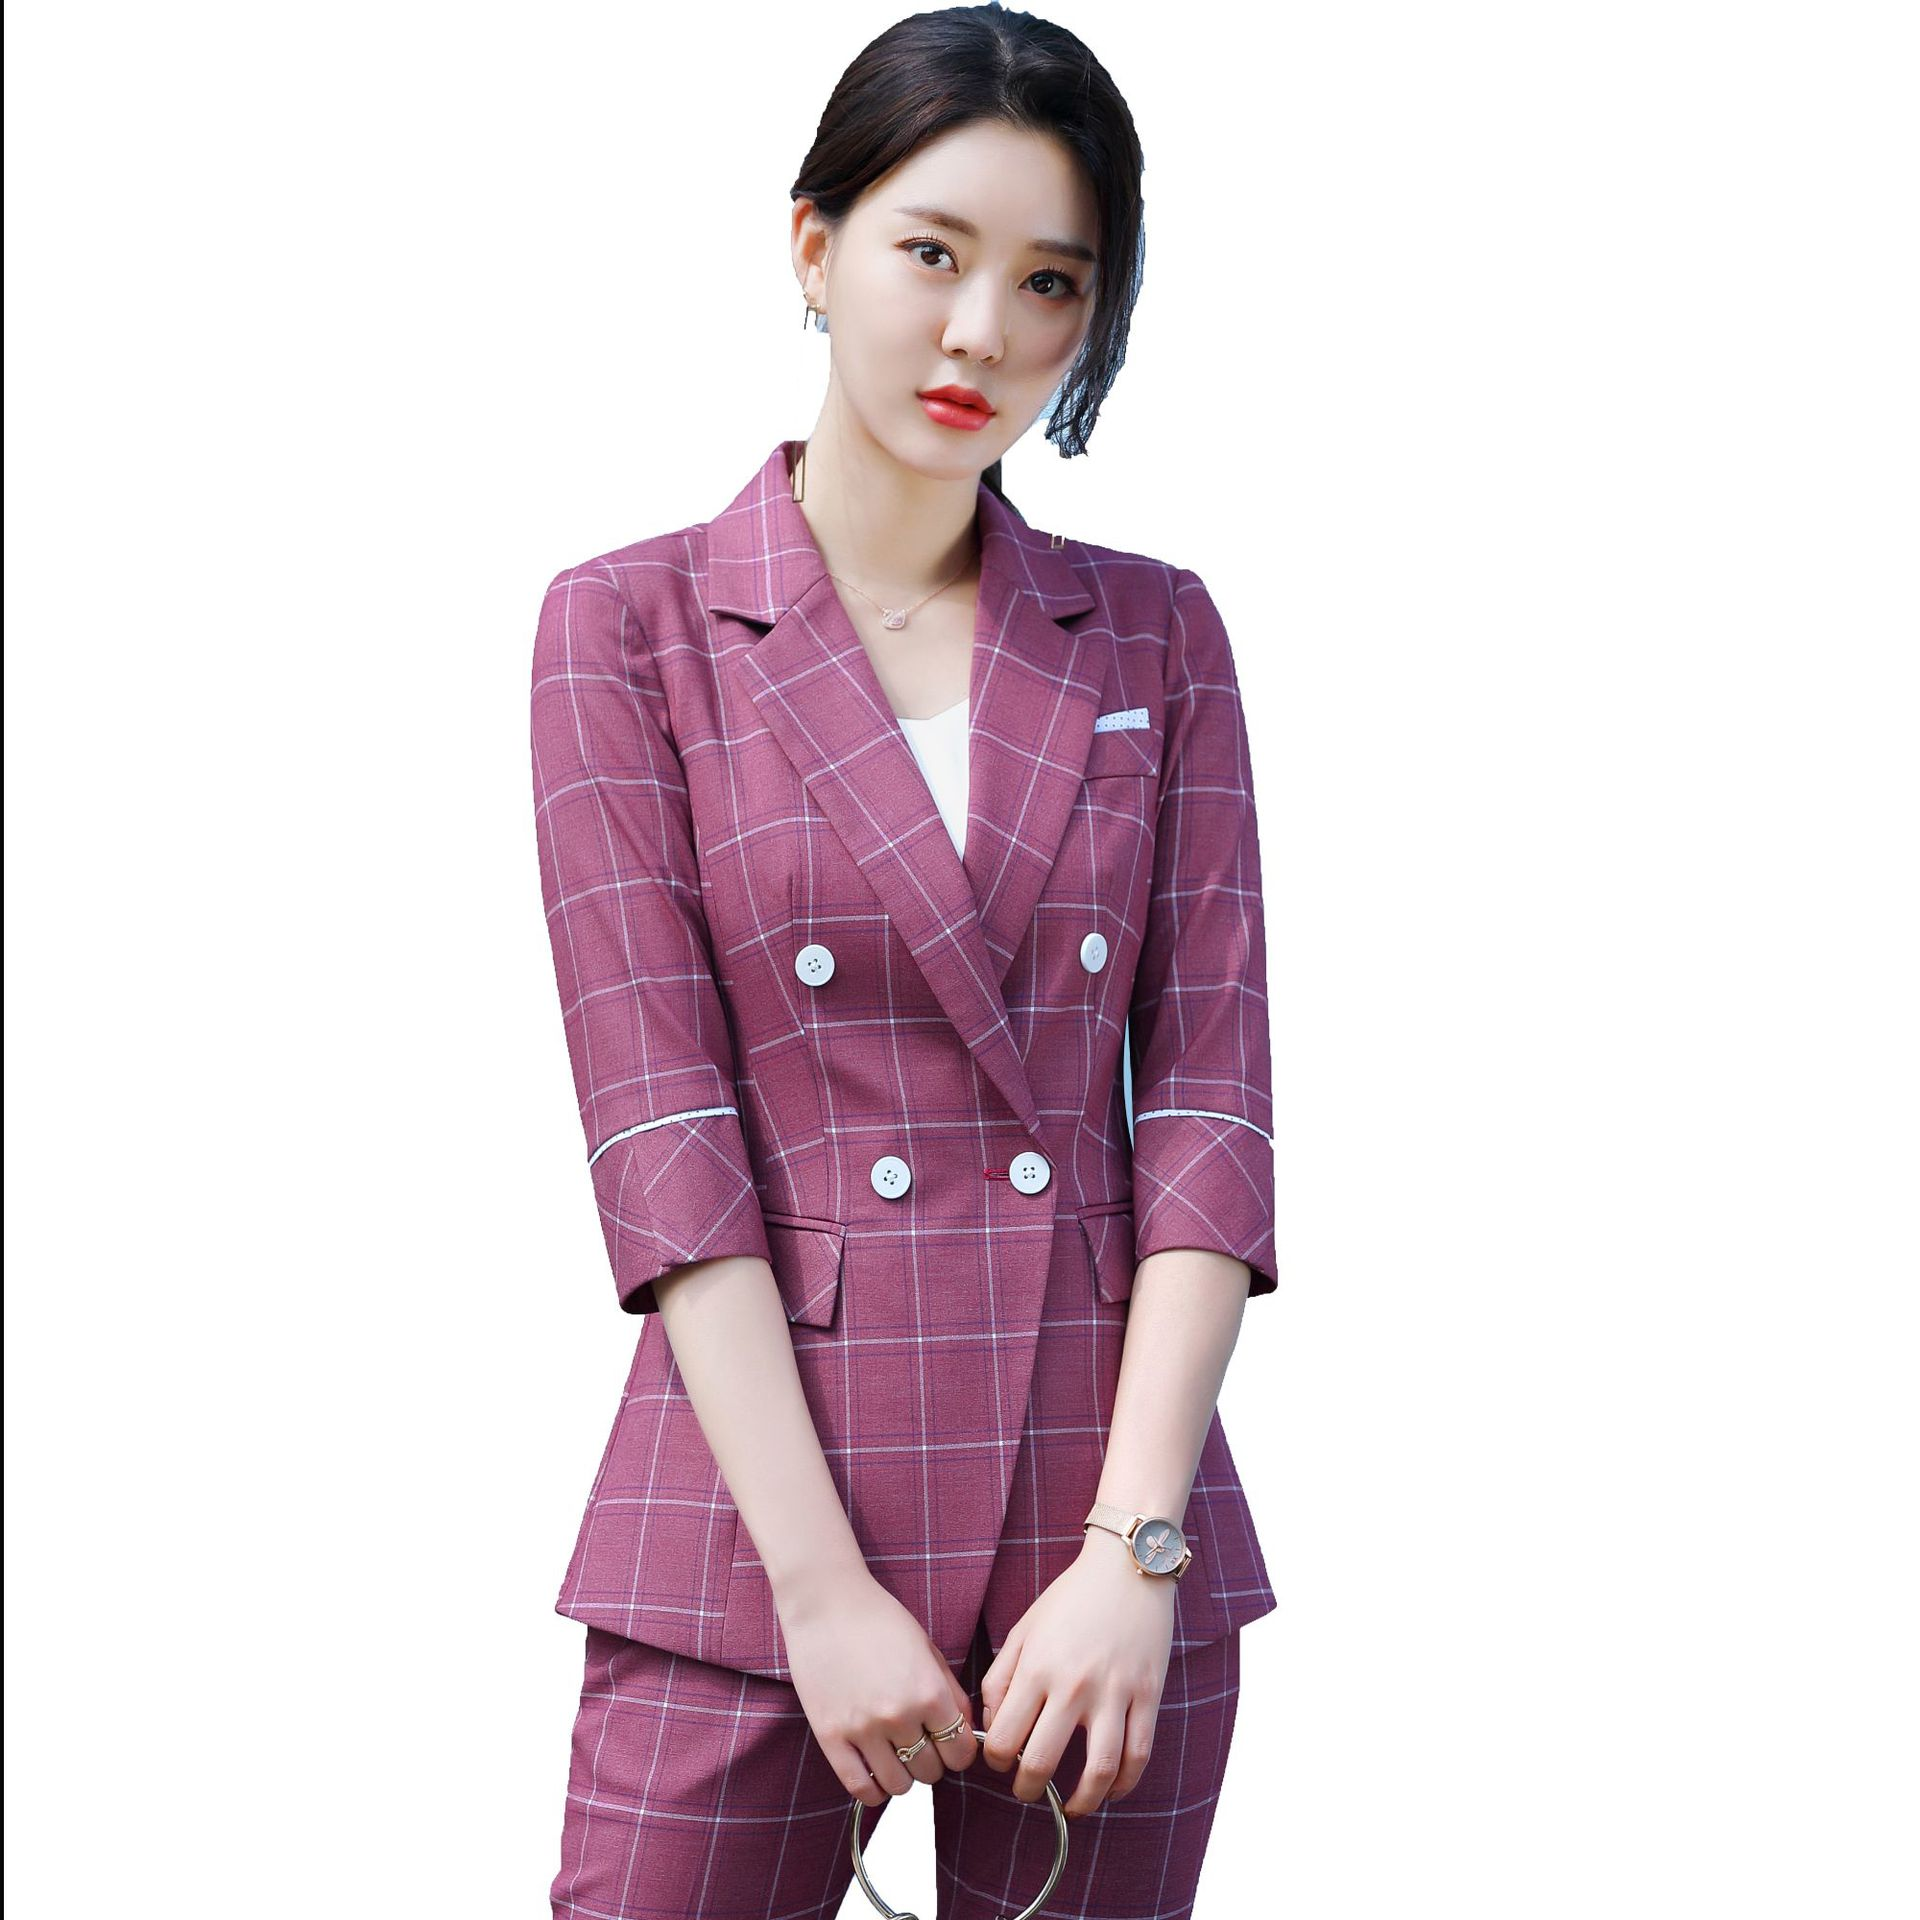 2020 Female Elegant Plaid Women's Pants Suit Set Blazer And Trouser Pant Business Uniform Clothing Purple Blue With Jacket Tops